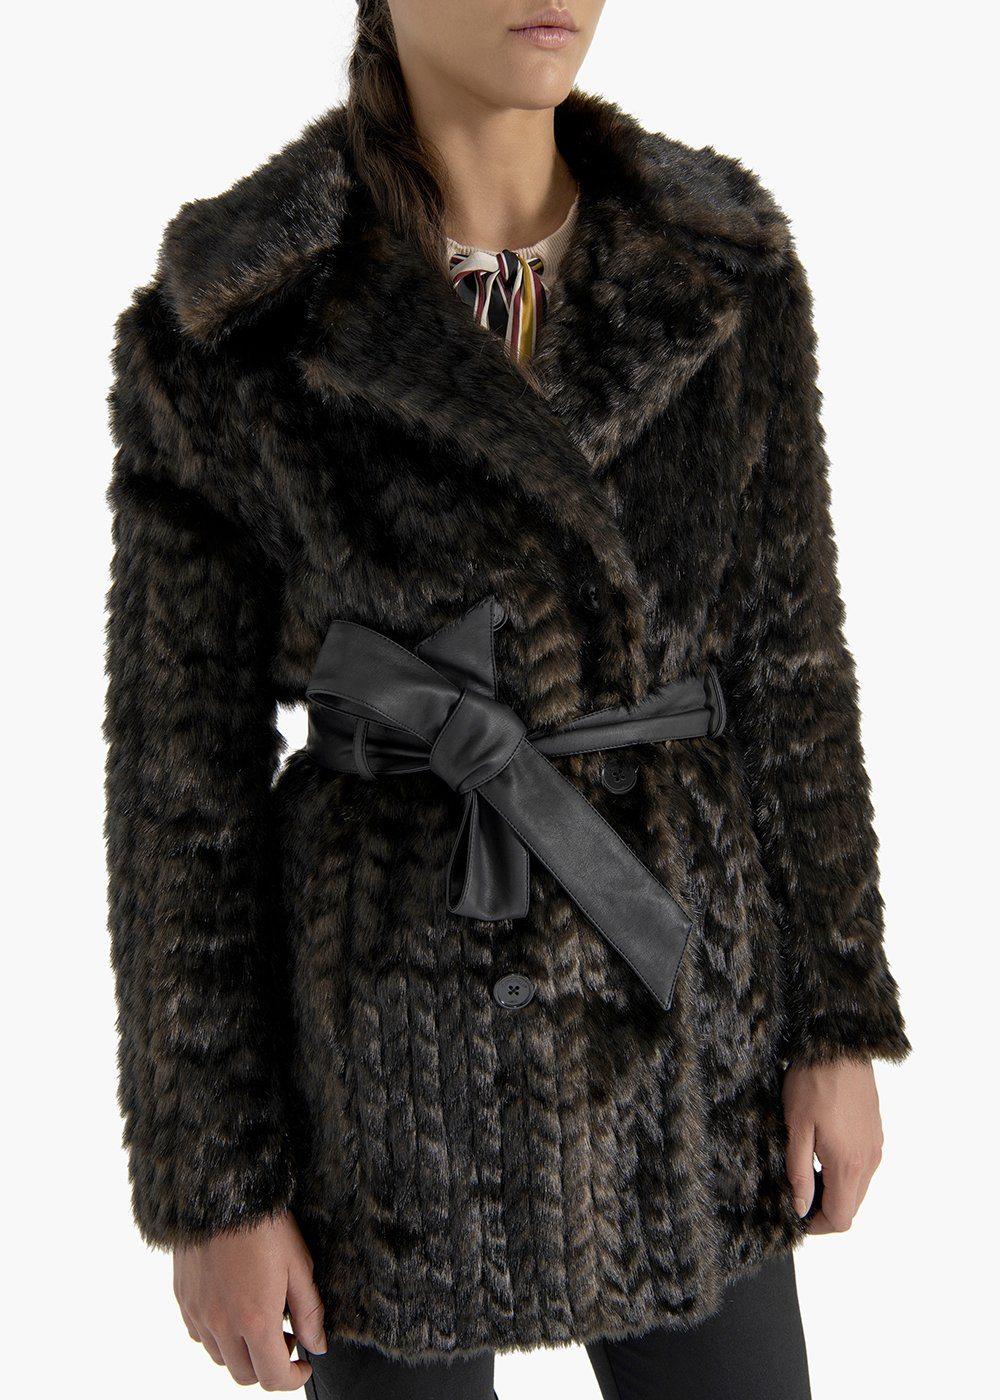 Double-breasted coat Glad in eco-fur mink effect - Brown - Woman